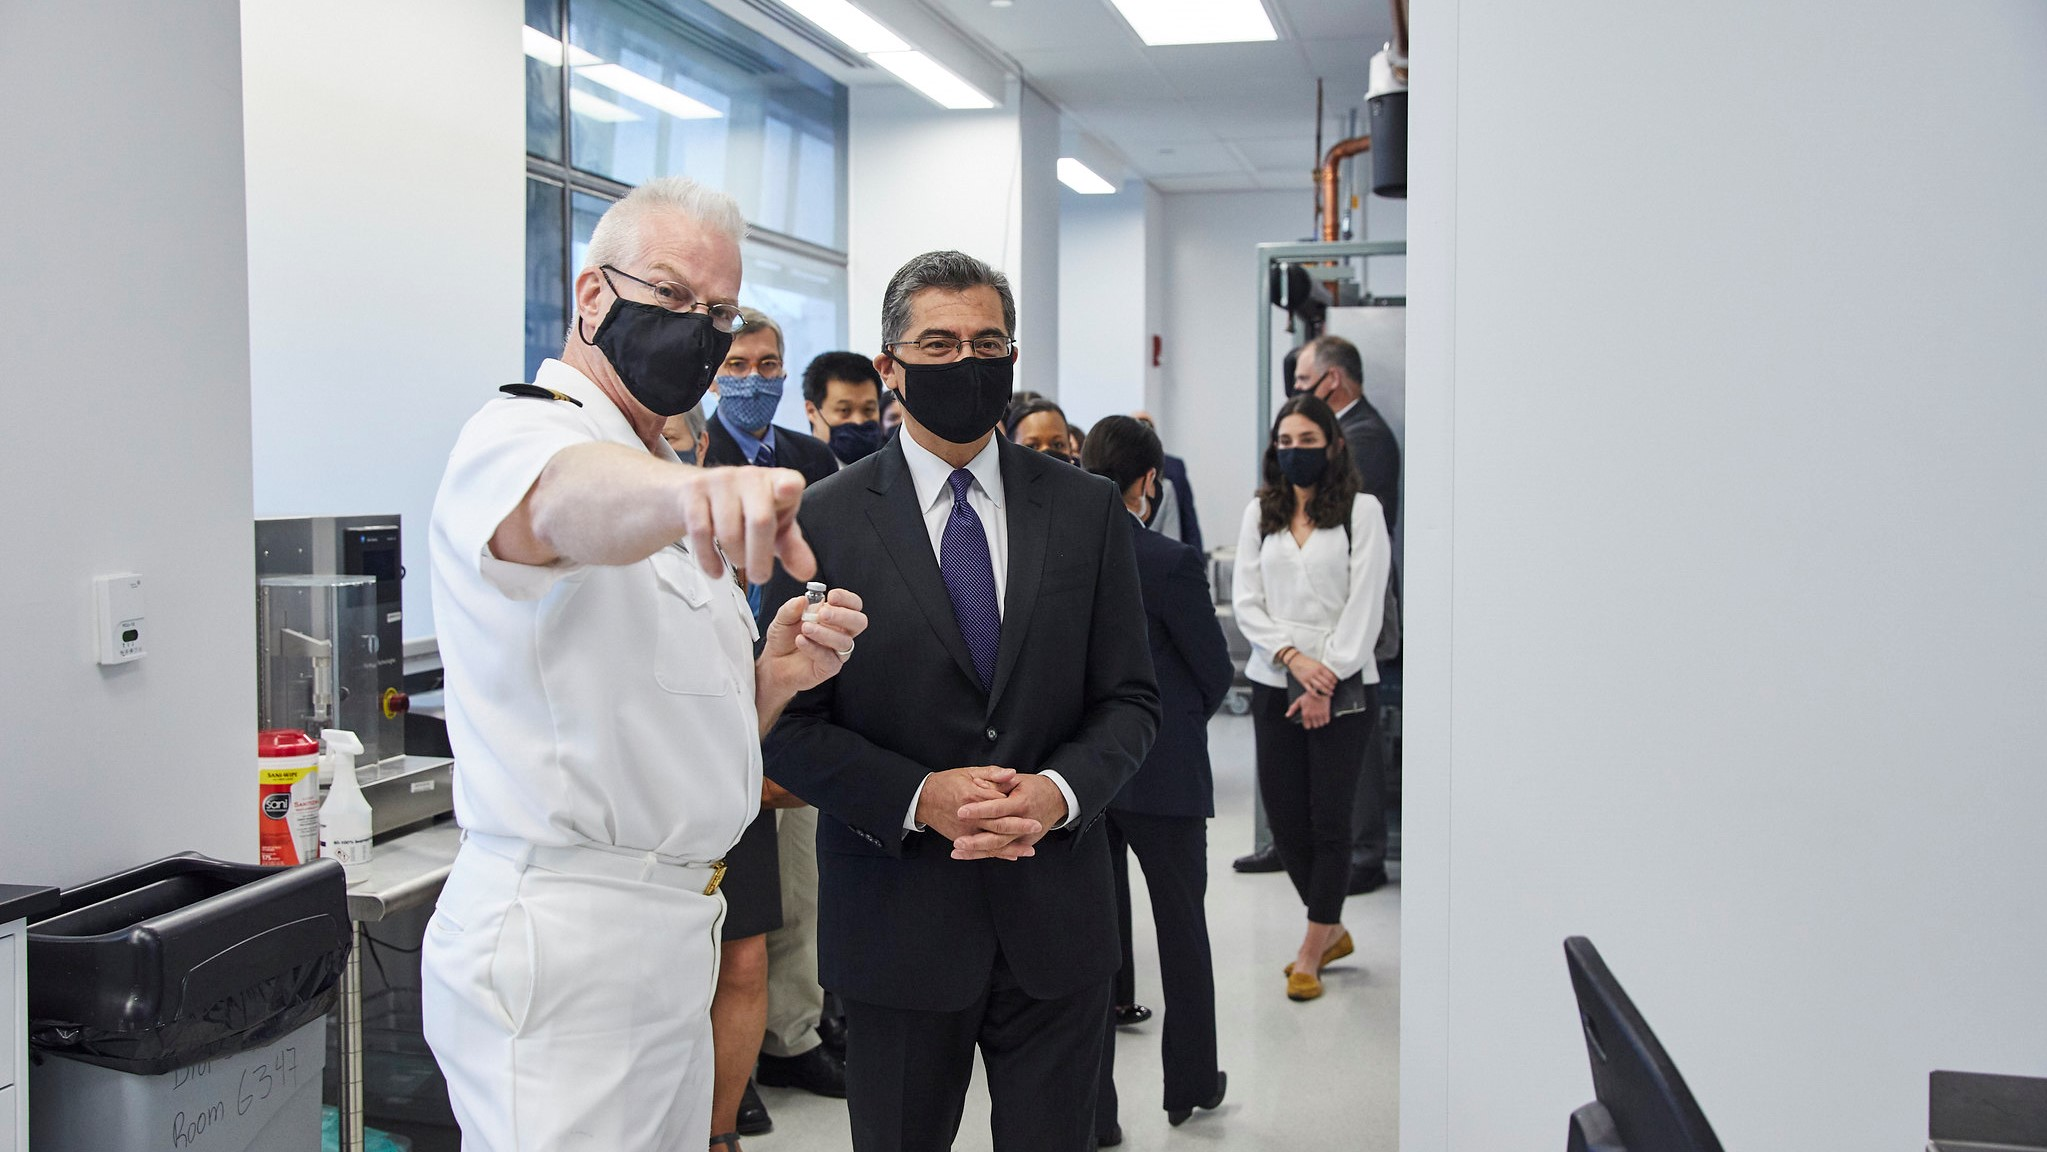 Health and Human Services Secretary Xavier Becerra met with FDA leaders in early May and visited an FDA lab. (Photo: FDA/Eli Kaplan)